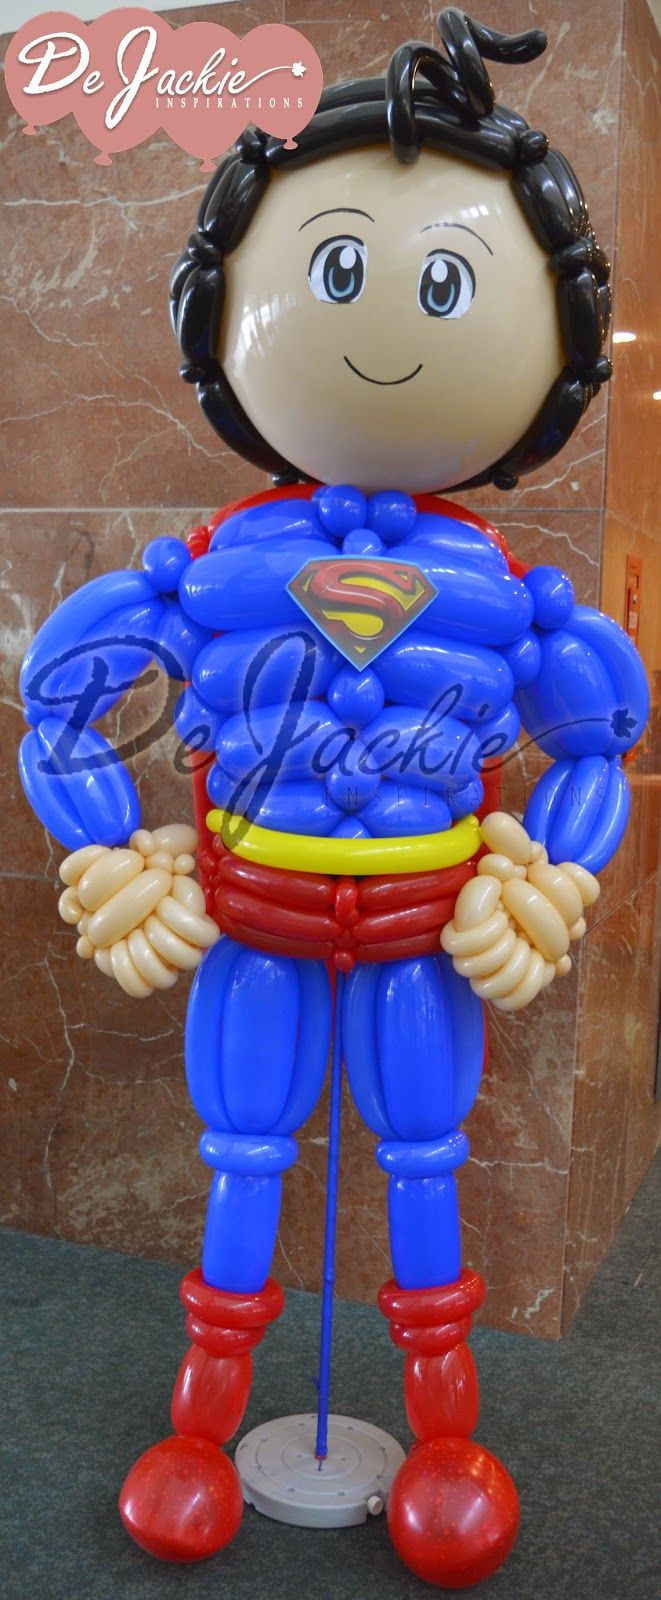 1000 images about supereroe on pinterest balloons events and bears balloon decorations for weddings birthday parties balloon sculptures in kuching and sibu sarawak junglespirit Gallery